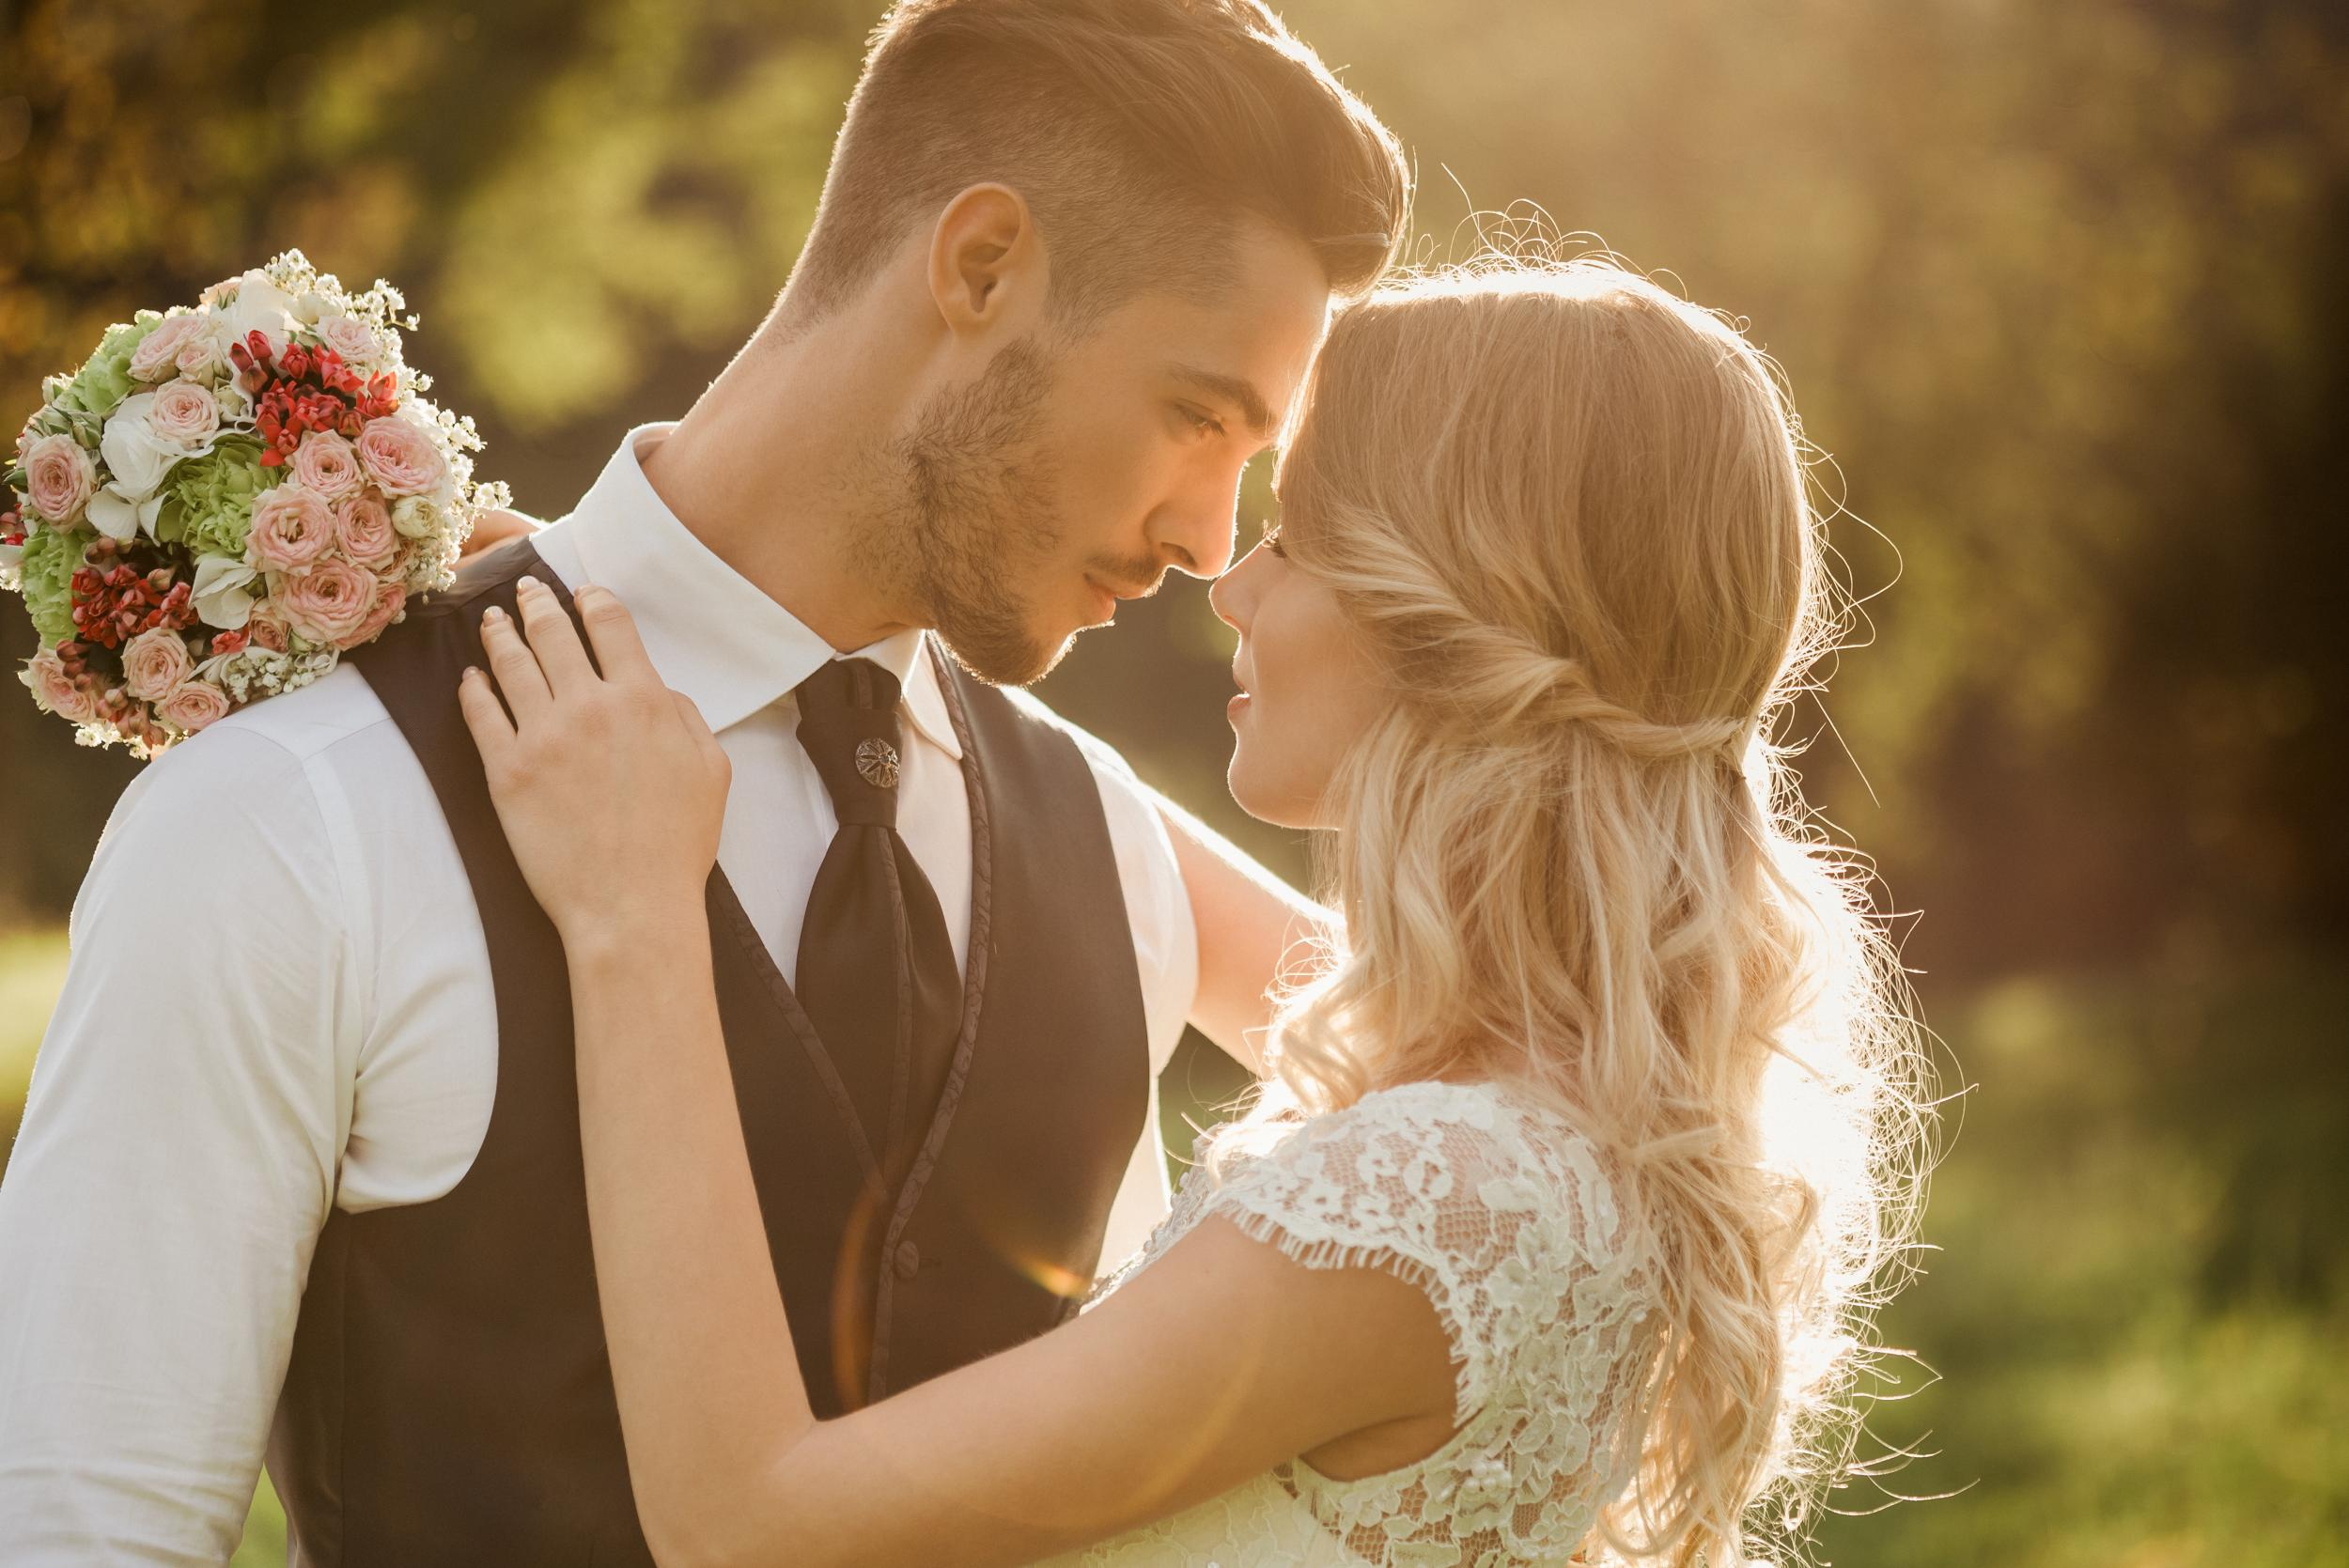 27 Wedding Guests Reveal The Moment They Knew The Marriage Was